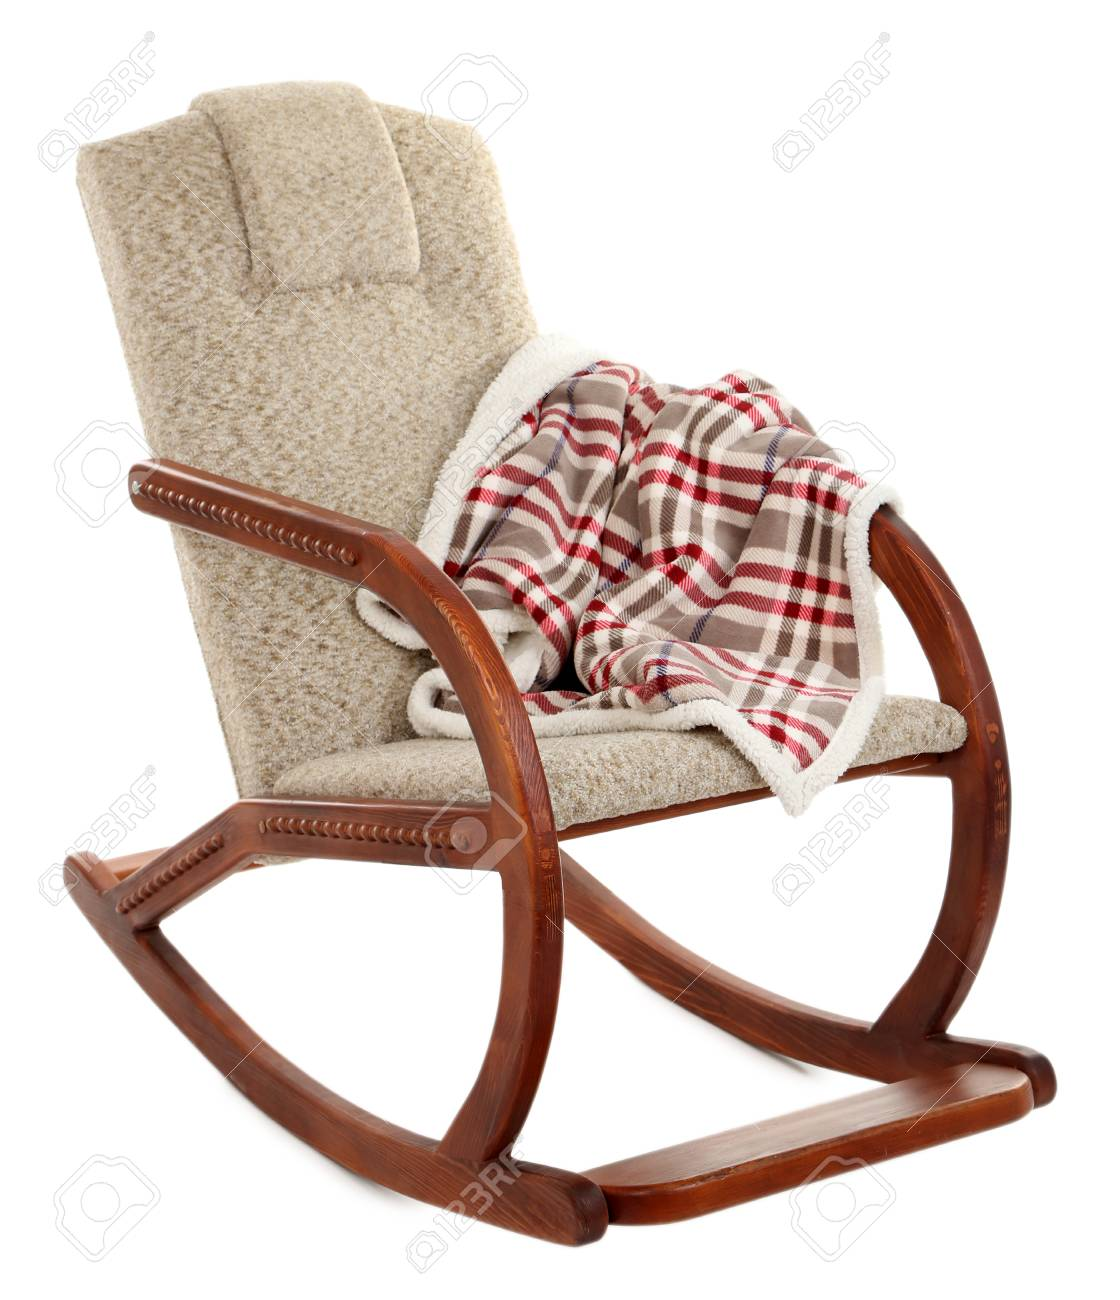 Fullsize Of Modern Rocking Chair